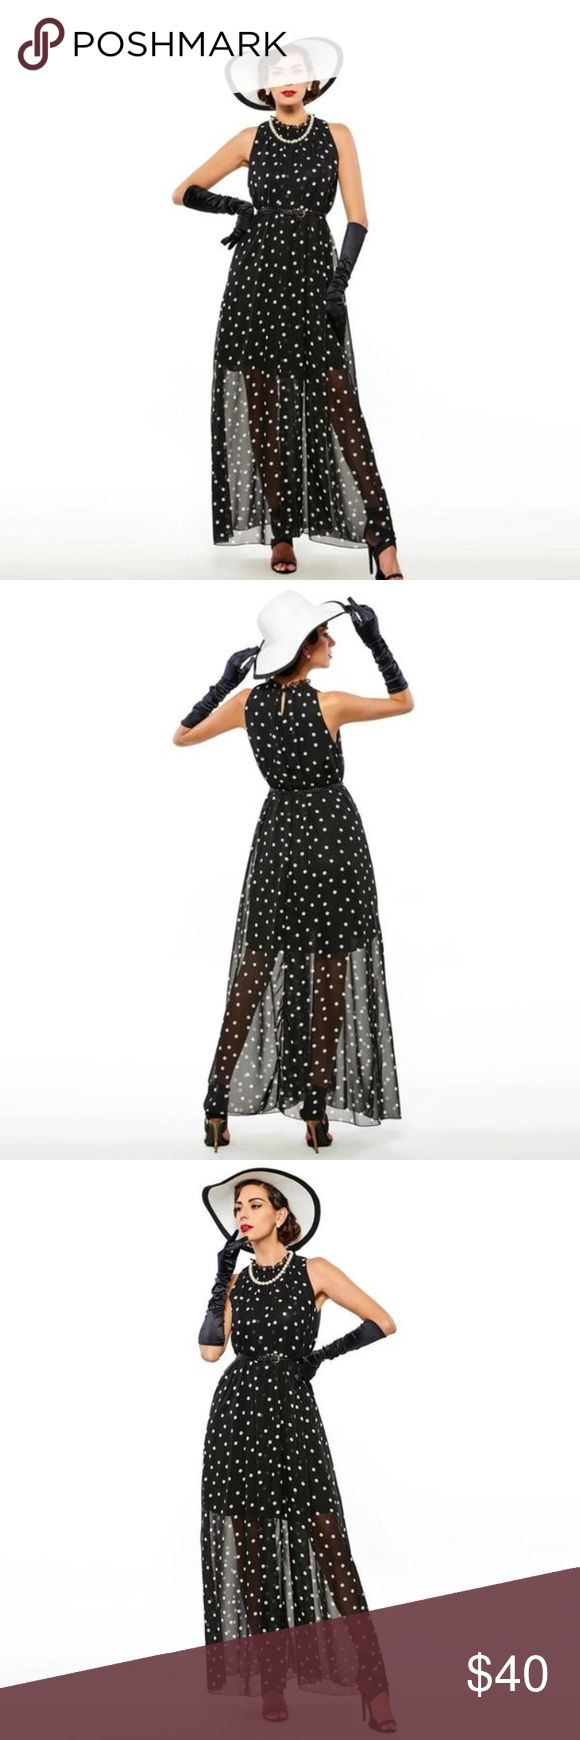 Black and White Polka Dot Sheer Maxi Dress Black and white polka dot maxi dress with slimming stretch underlayer and luxurious sheer overlayer. Comes with black braided leather belt.  Perfect for a garden party, wedding, or a night out. Clocolor Dresses Maxi